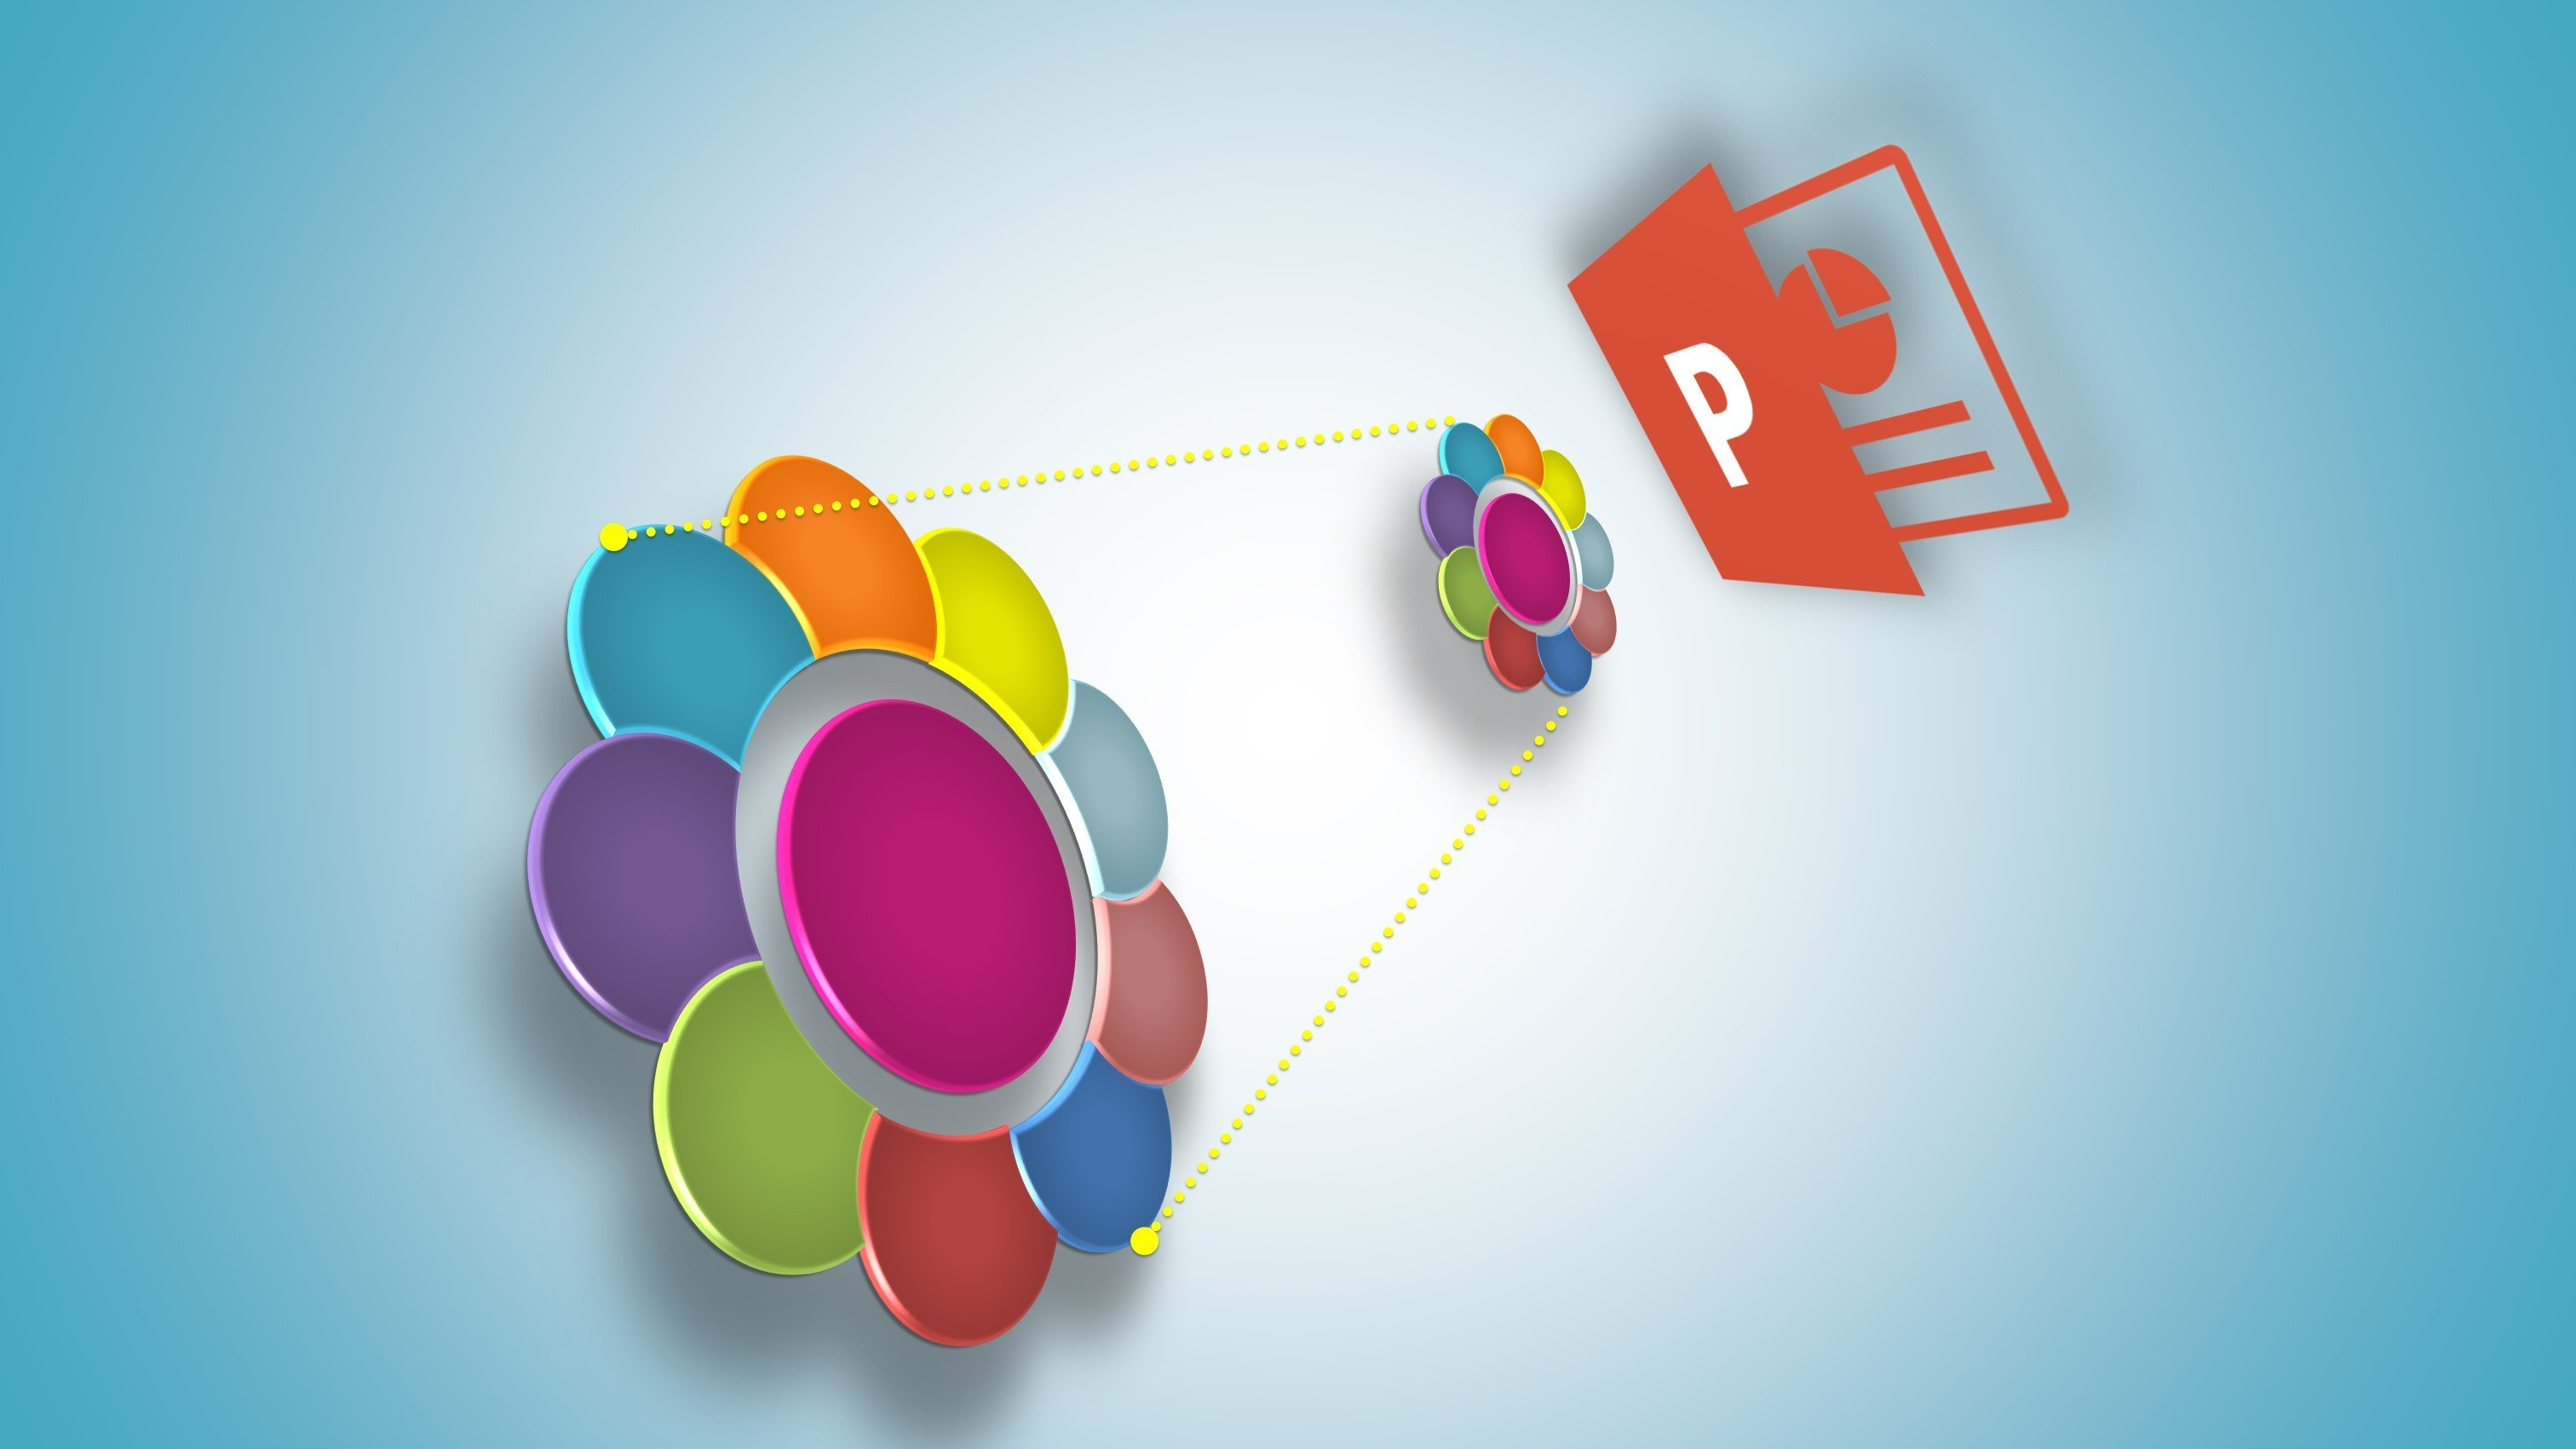 Stunning 3D Design, Typography and Animation: Easy with PowerPoint 2013